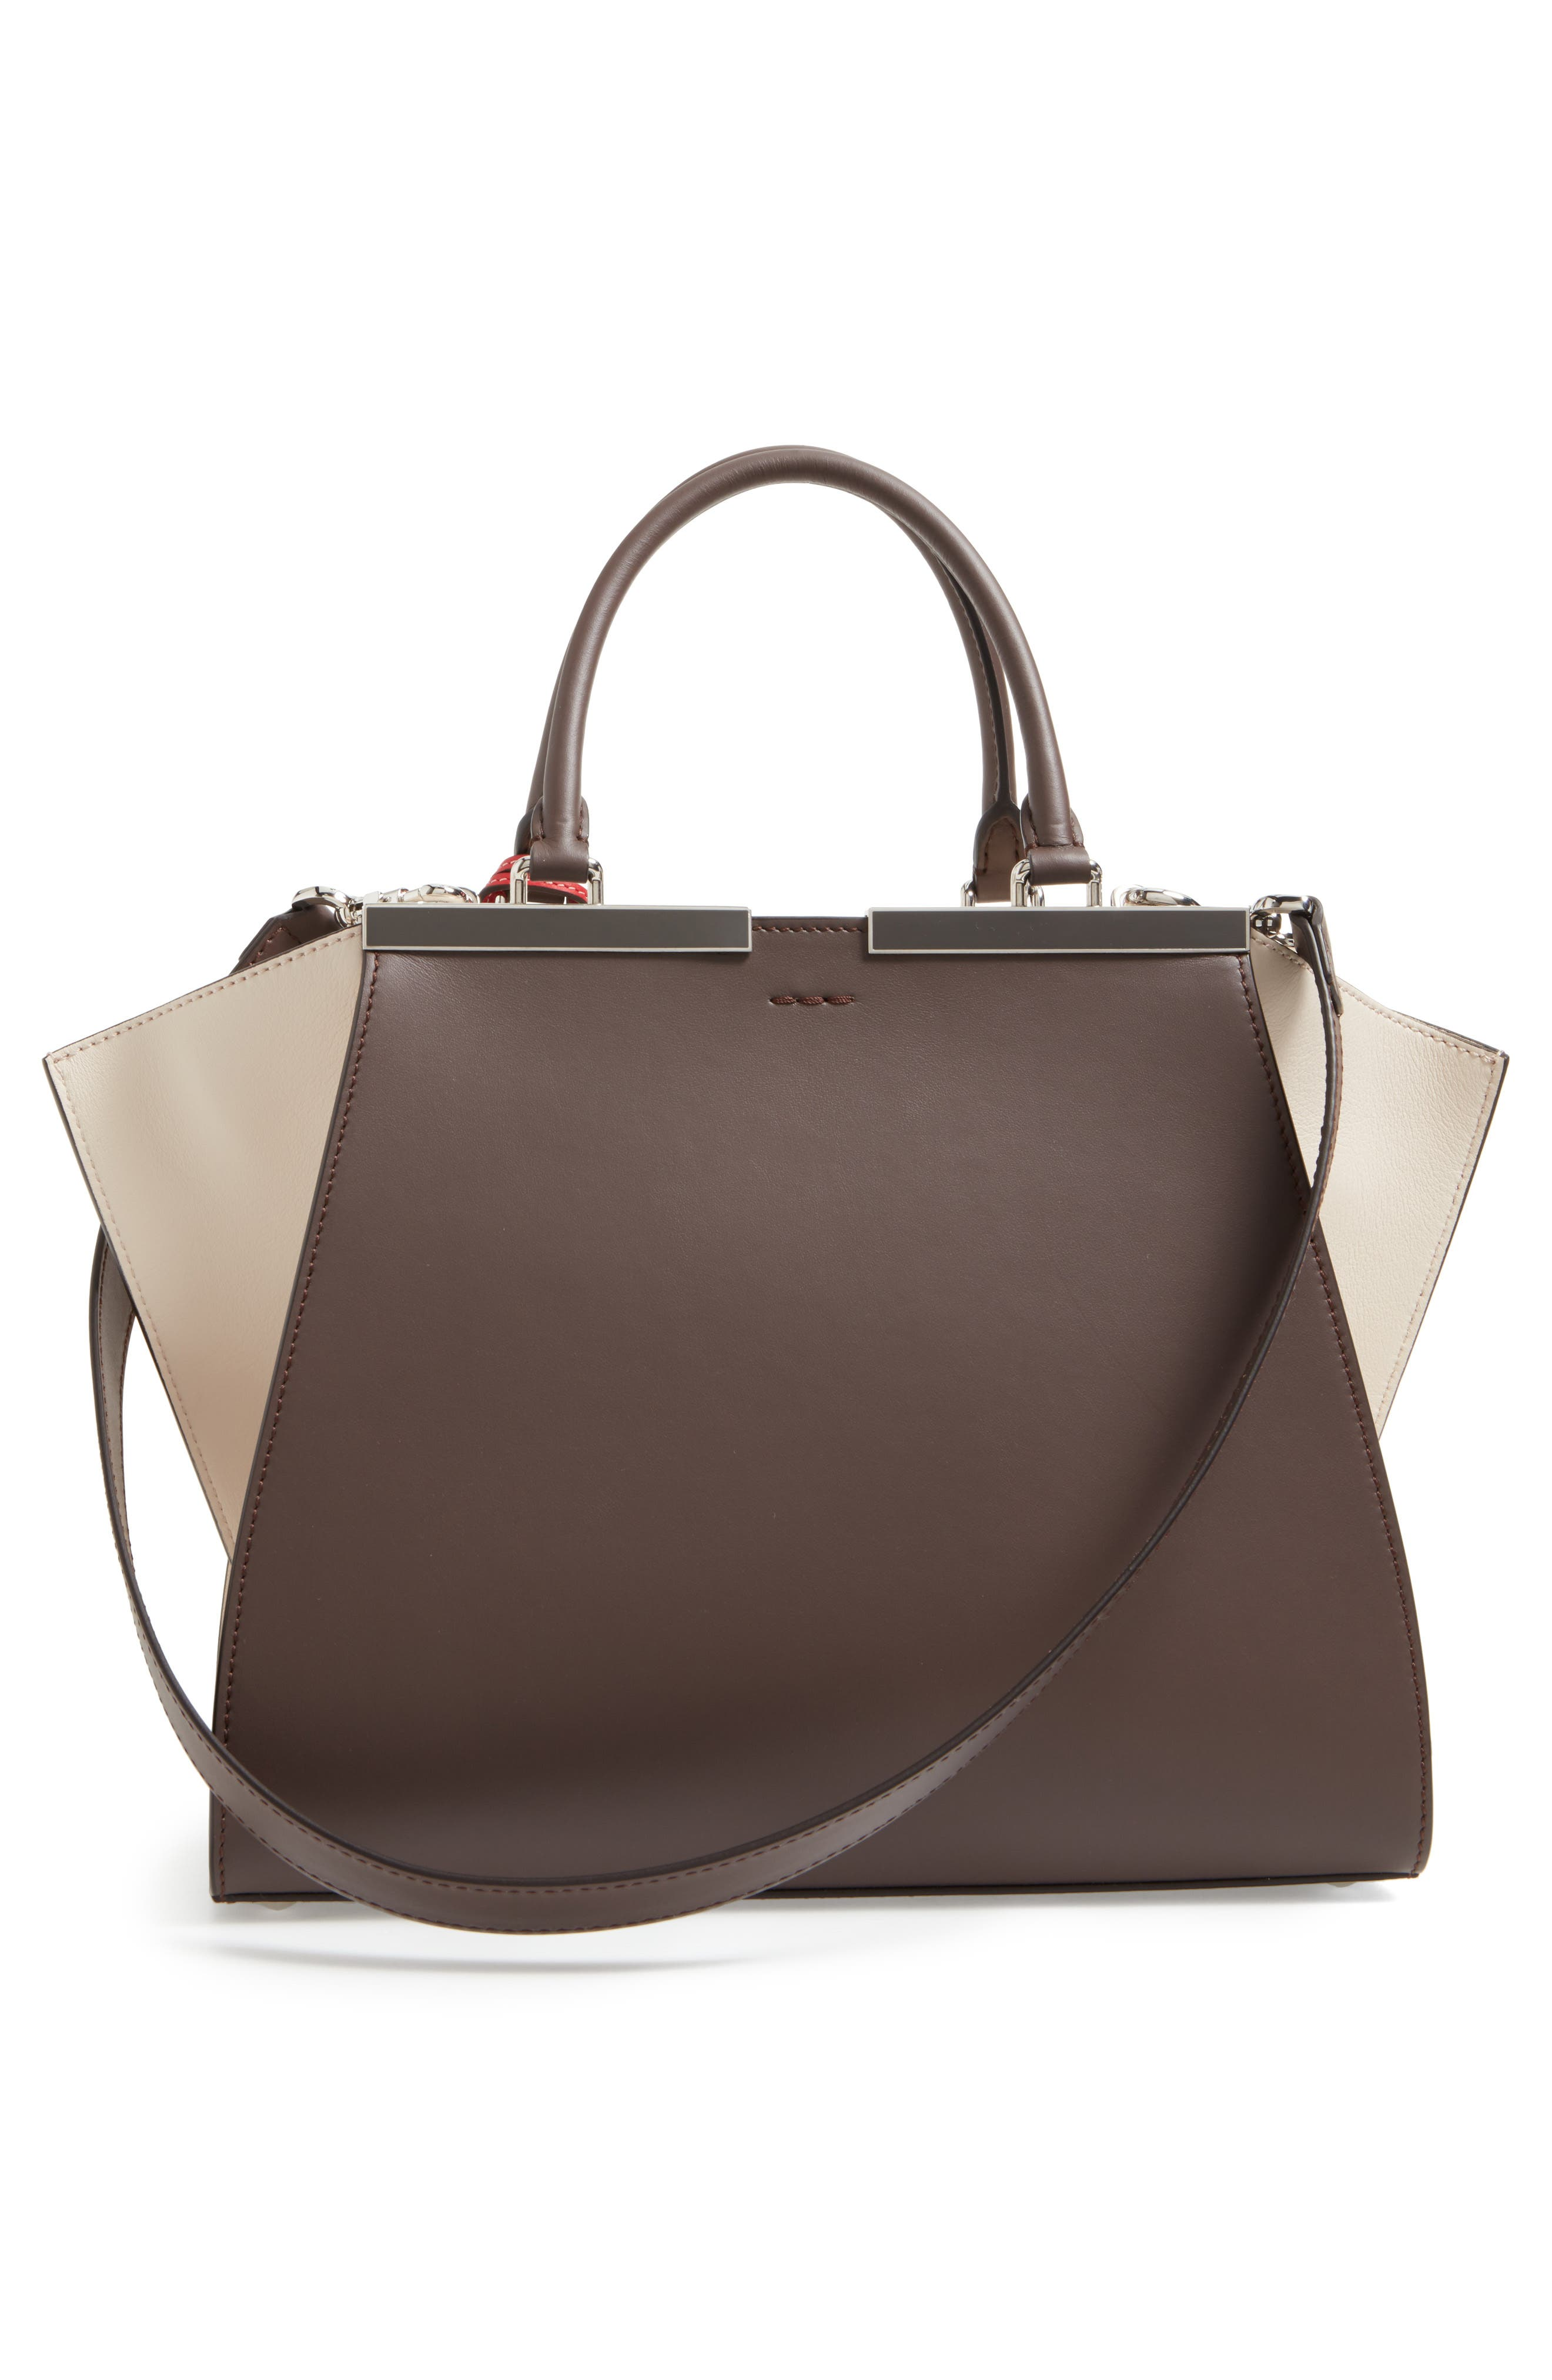 3Jours Colorblock Calfskin Leather Shopper,                             Alternate thumbnail 4, color,                             CHOCOLATE/ WHITE